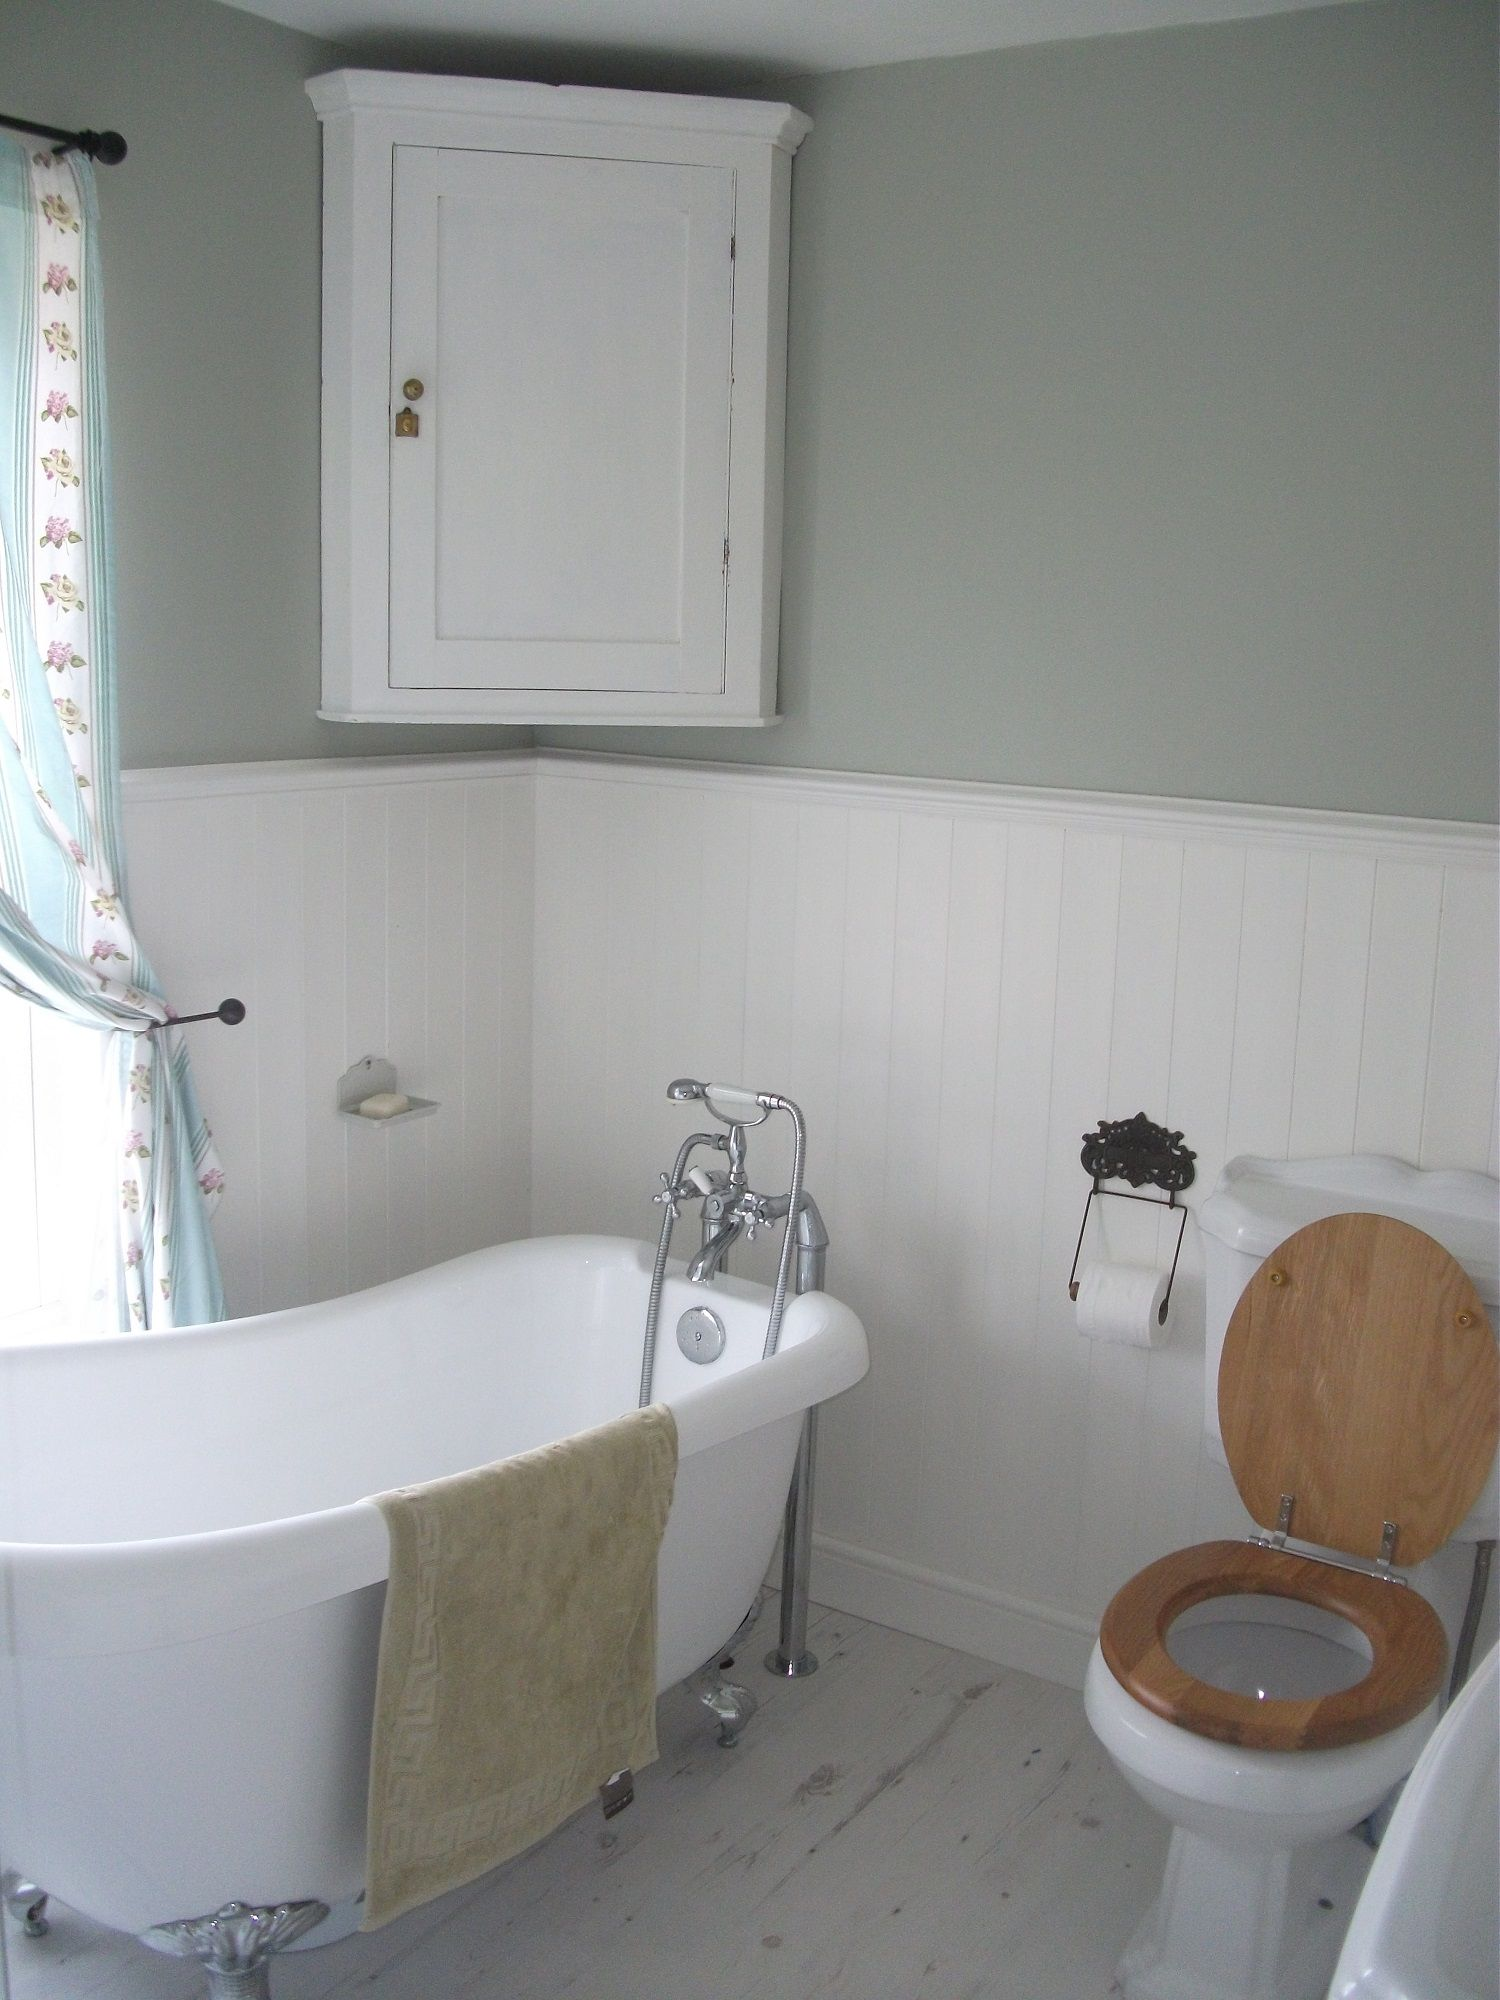 Our vintage style bathroom complete with slipper bath - walls in ...